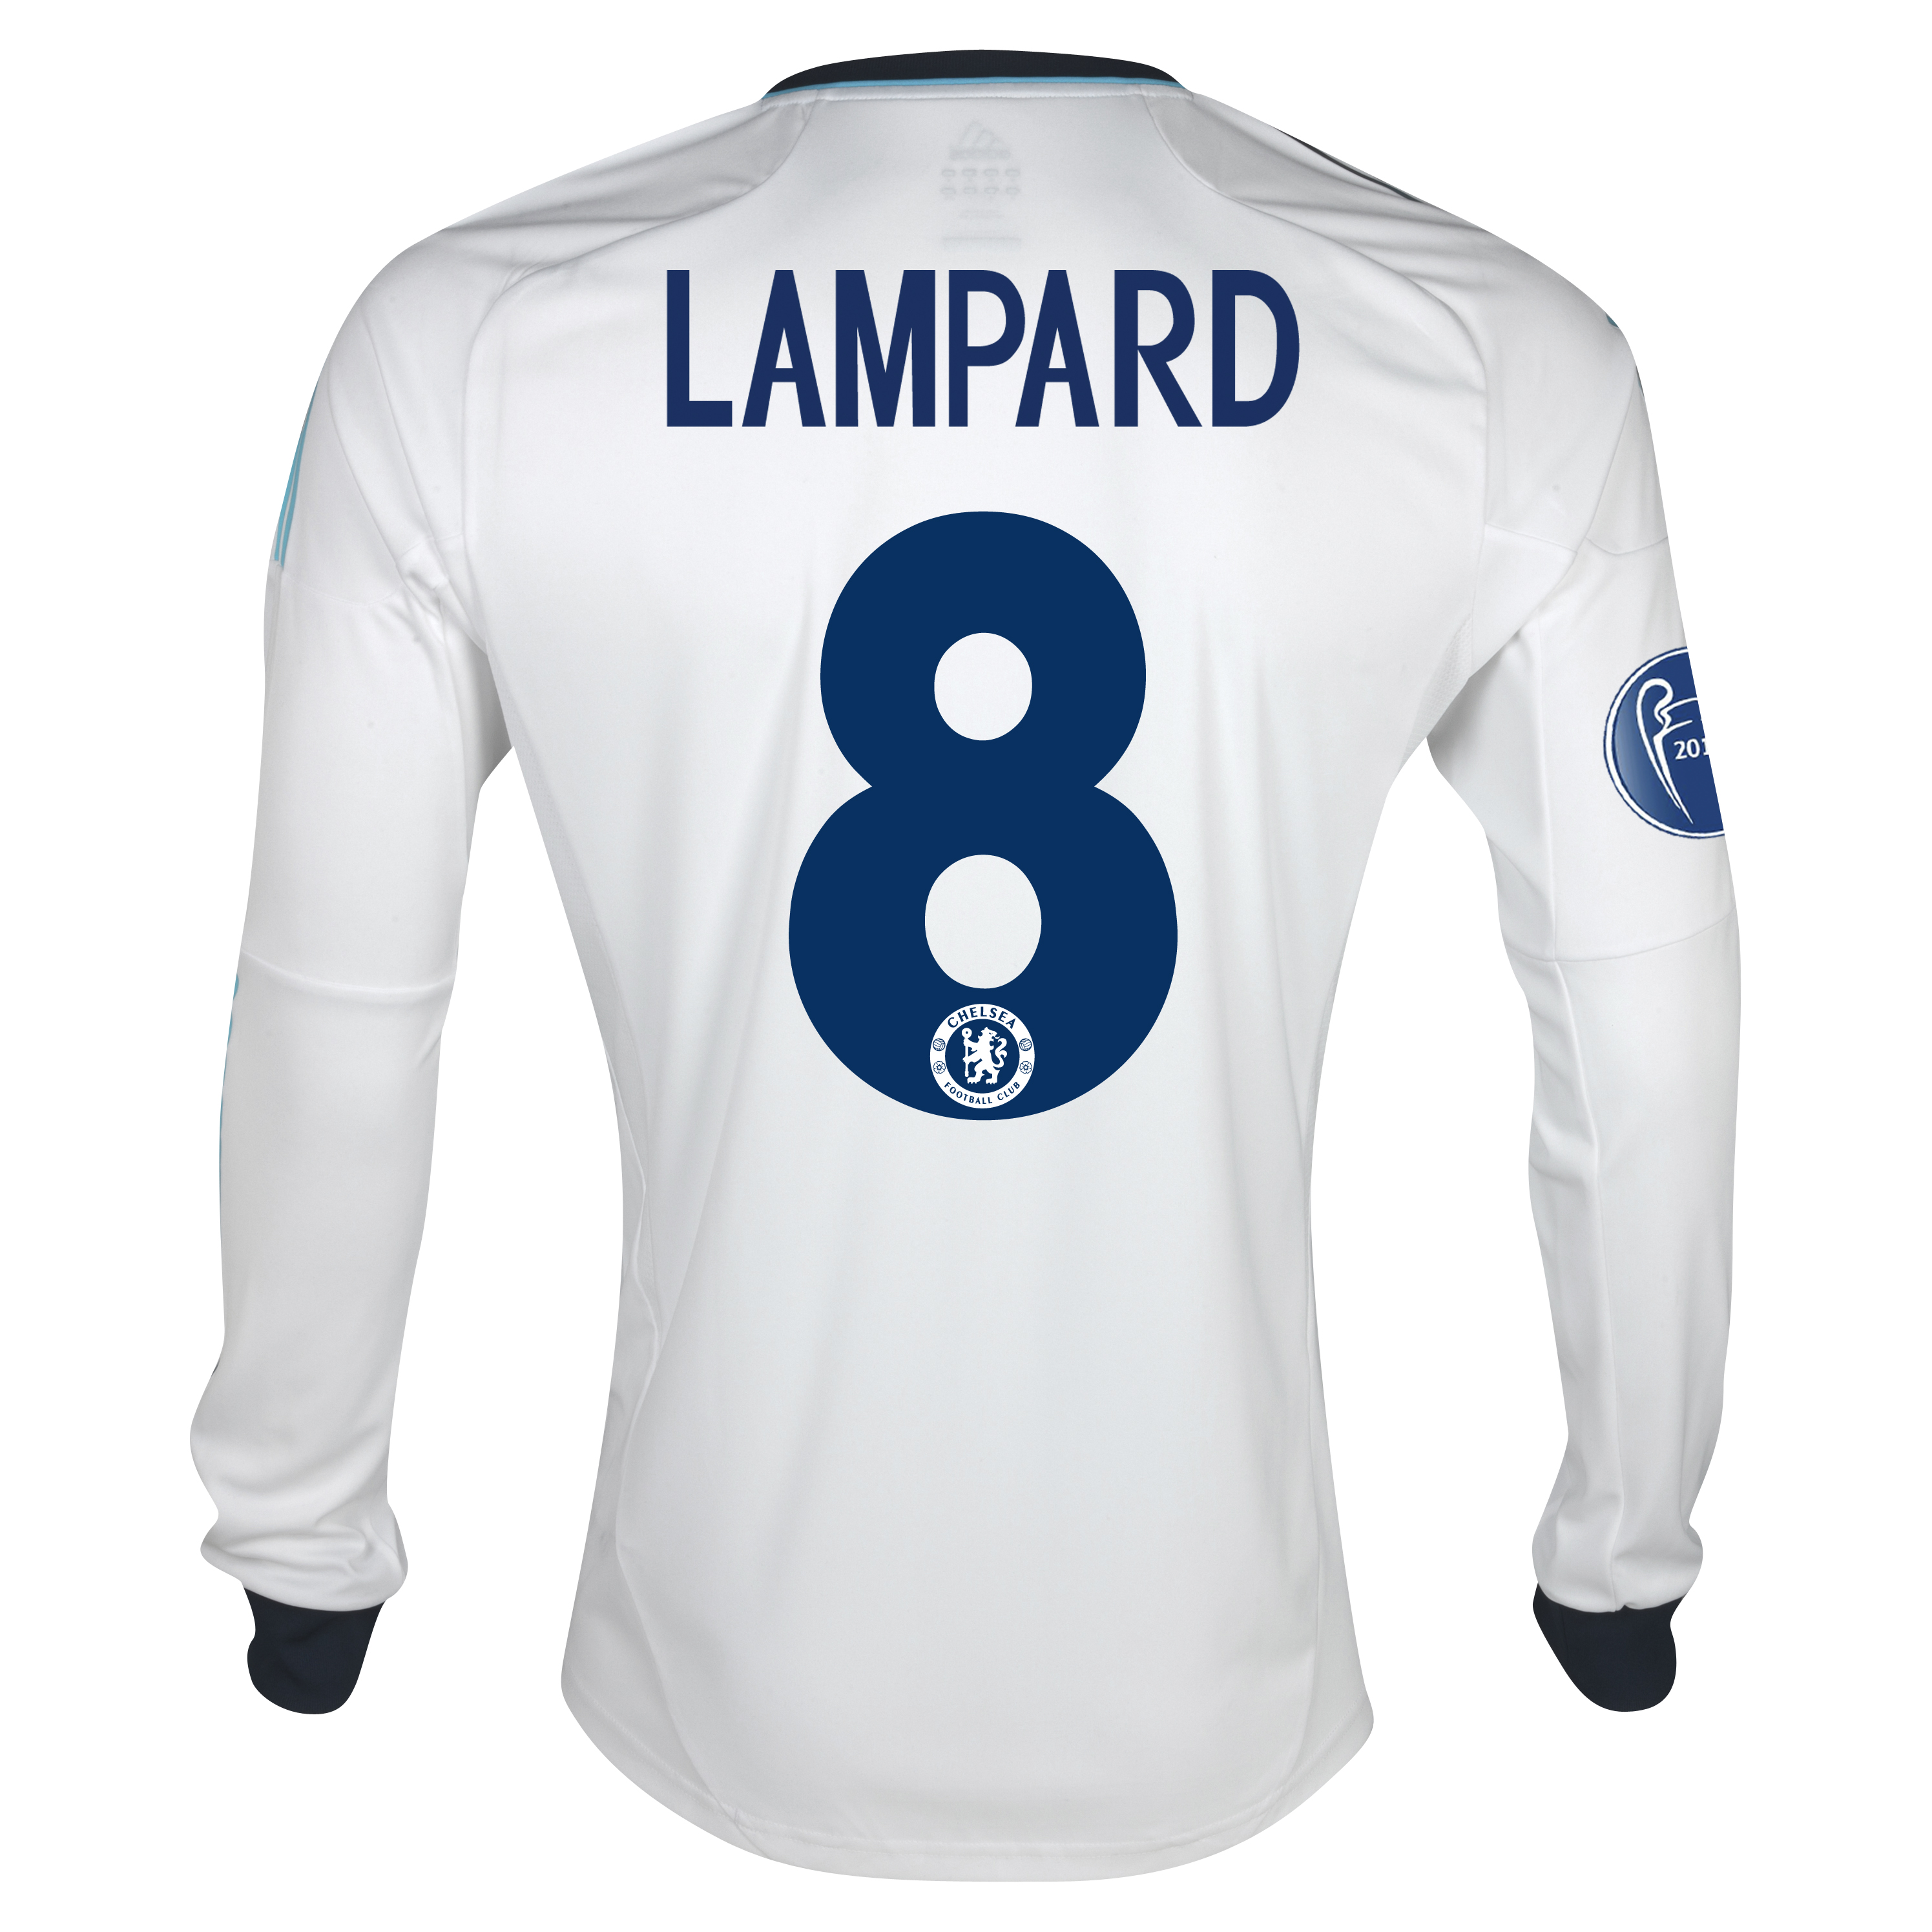 Chelsea UEFA Champions League Away Shirt 2012/13 - Long Sleeved  - Youths with Lampard 8 printing